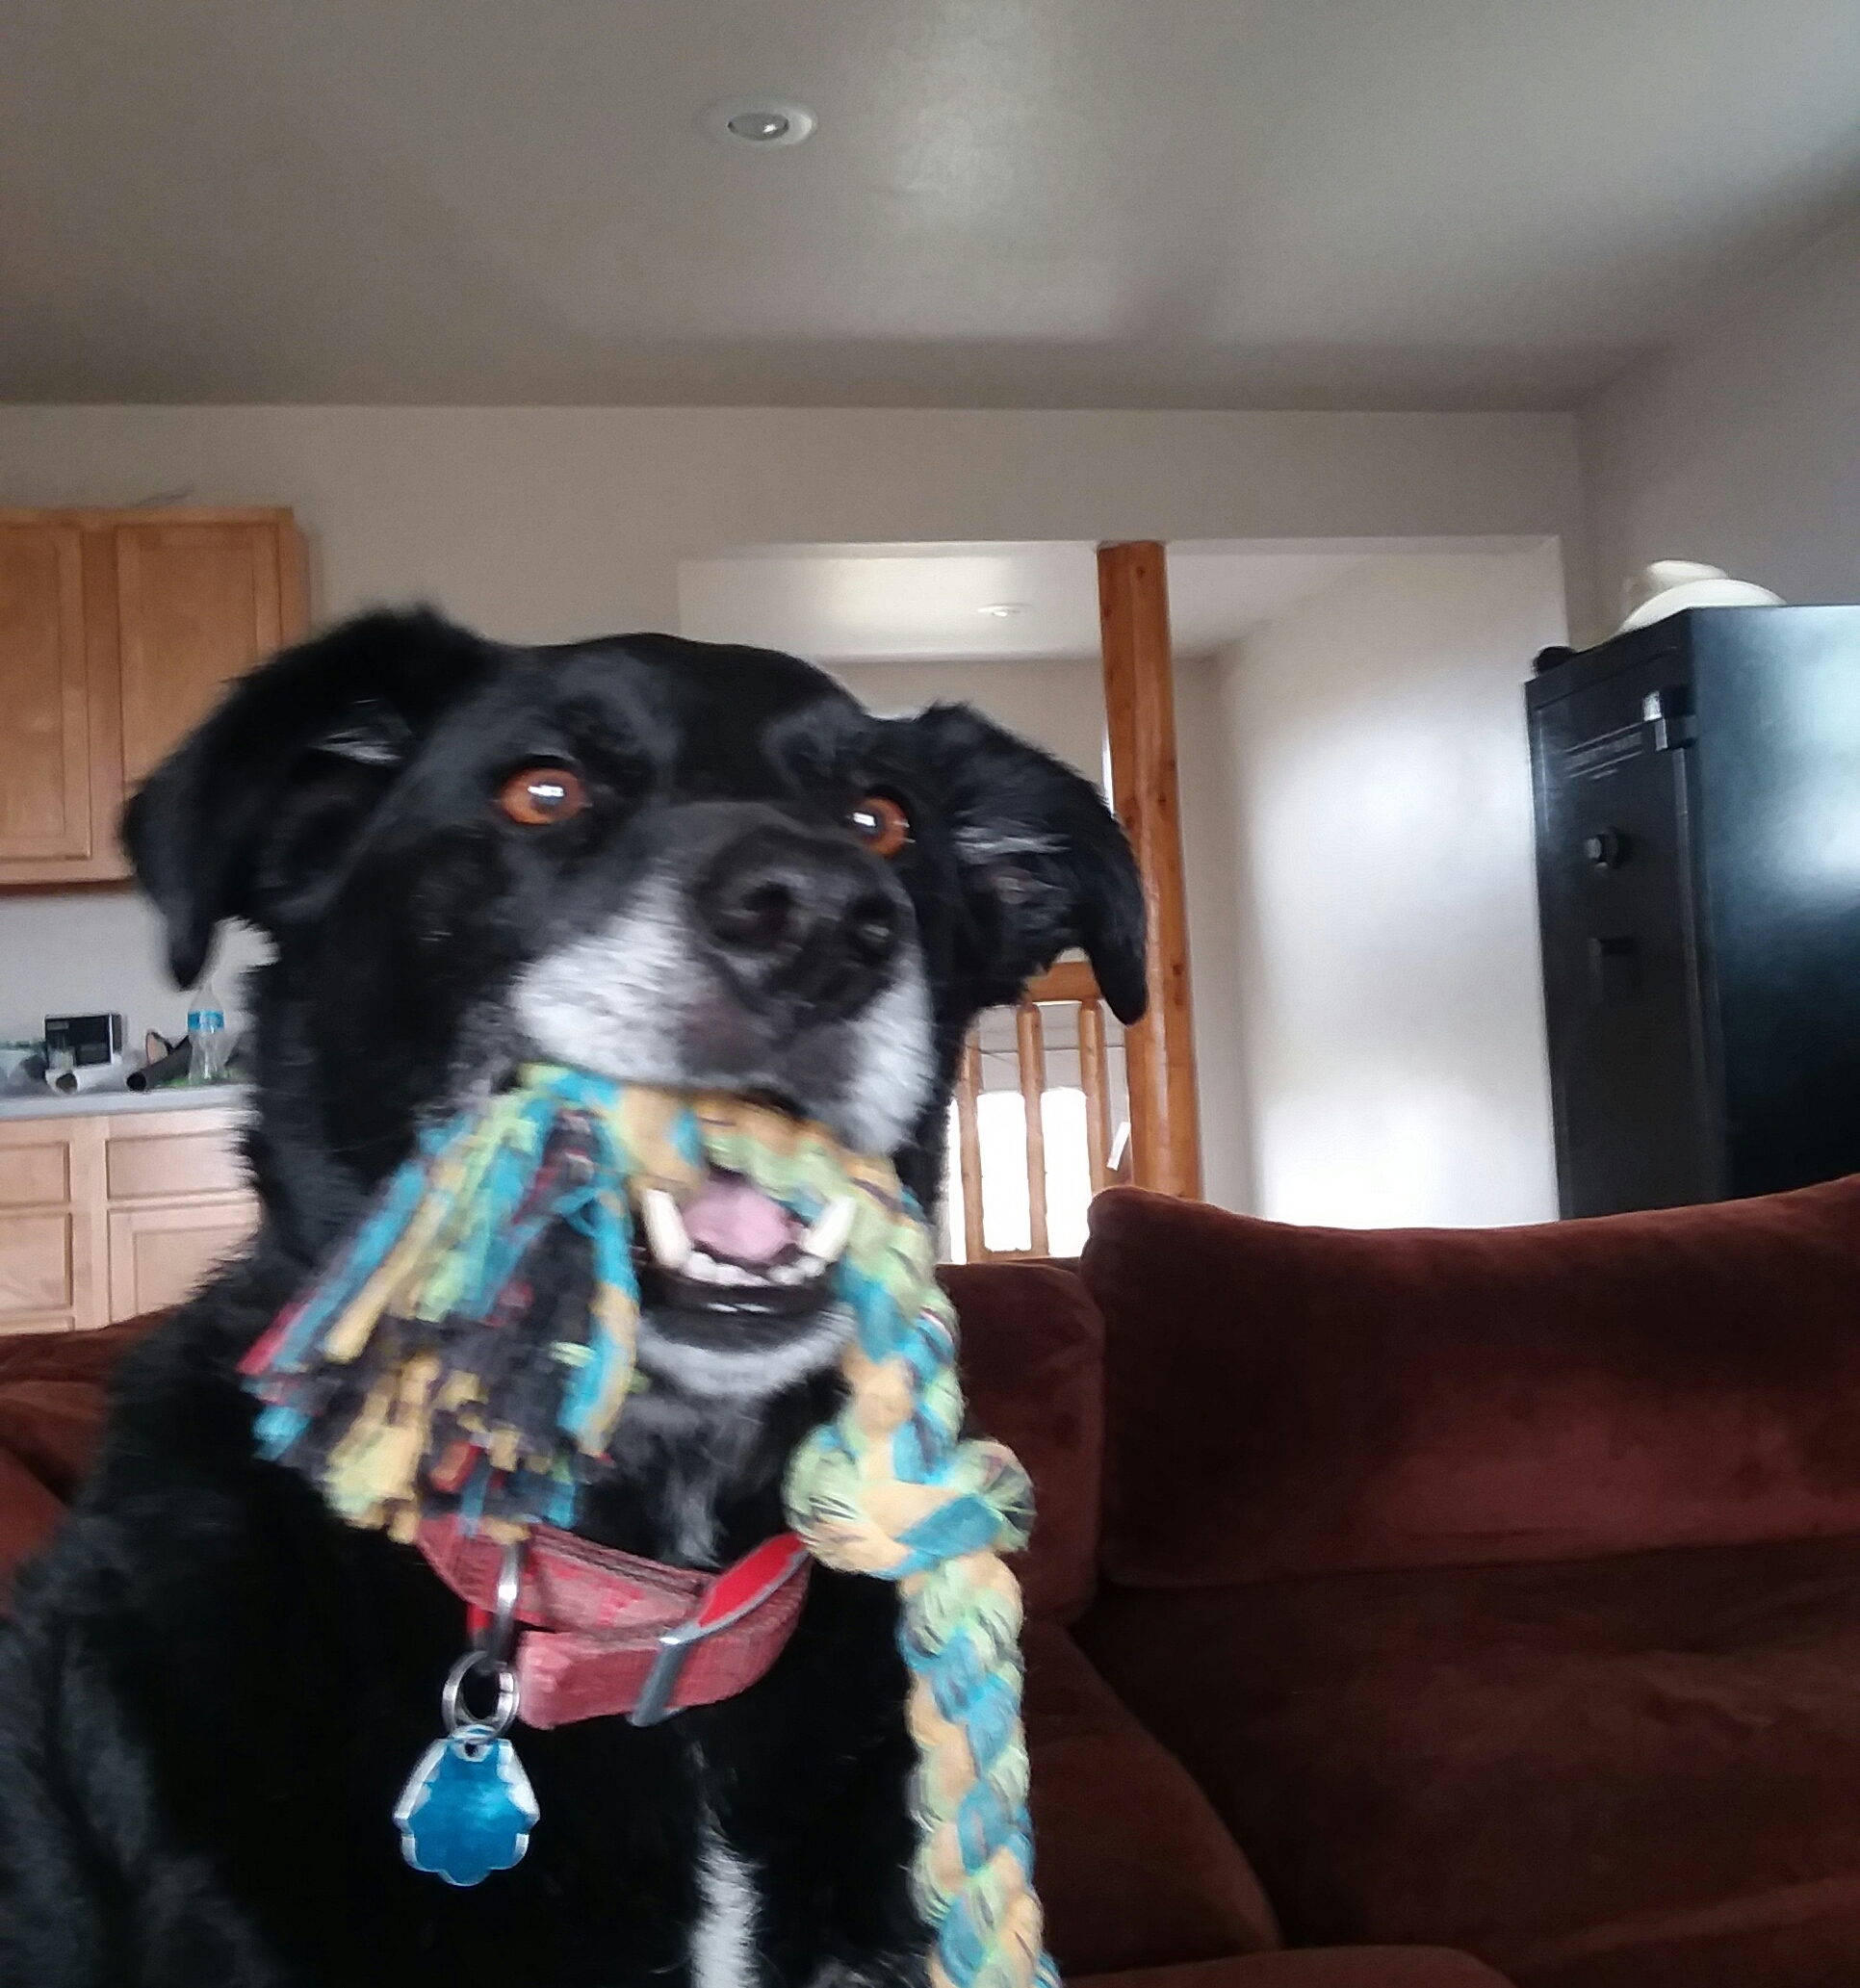 How About A Pet Picture Thread: Dogs, Cats, ...-20180919_212413.jpg